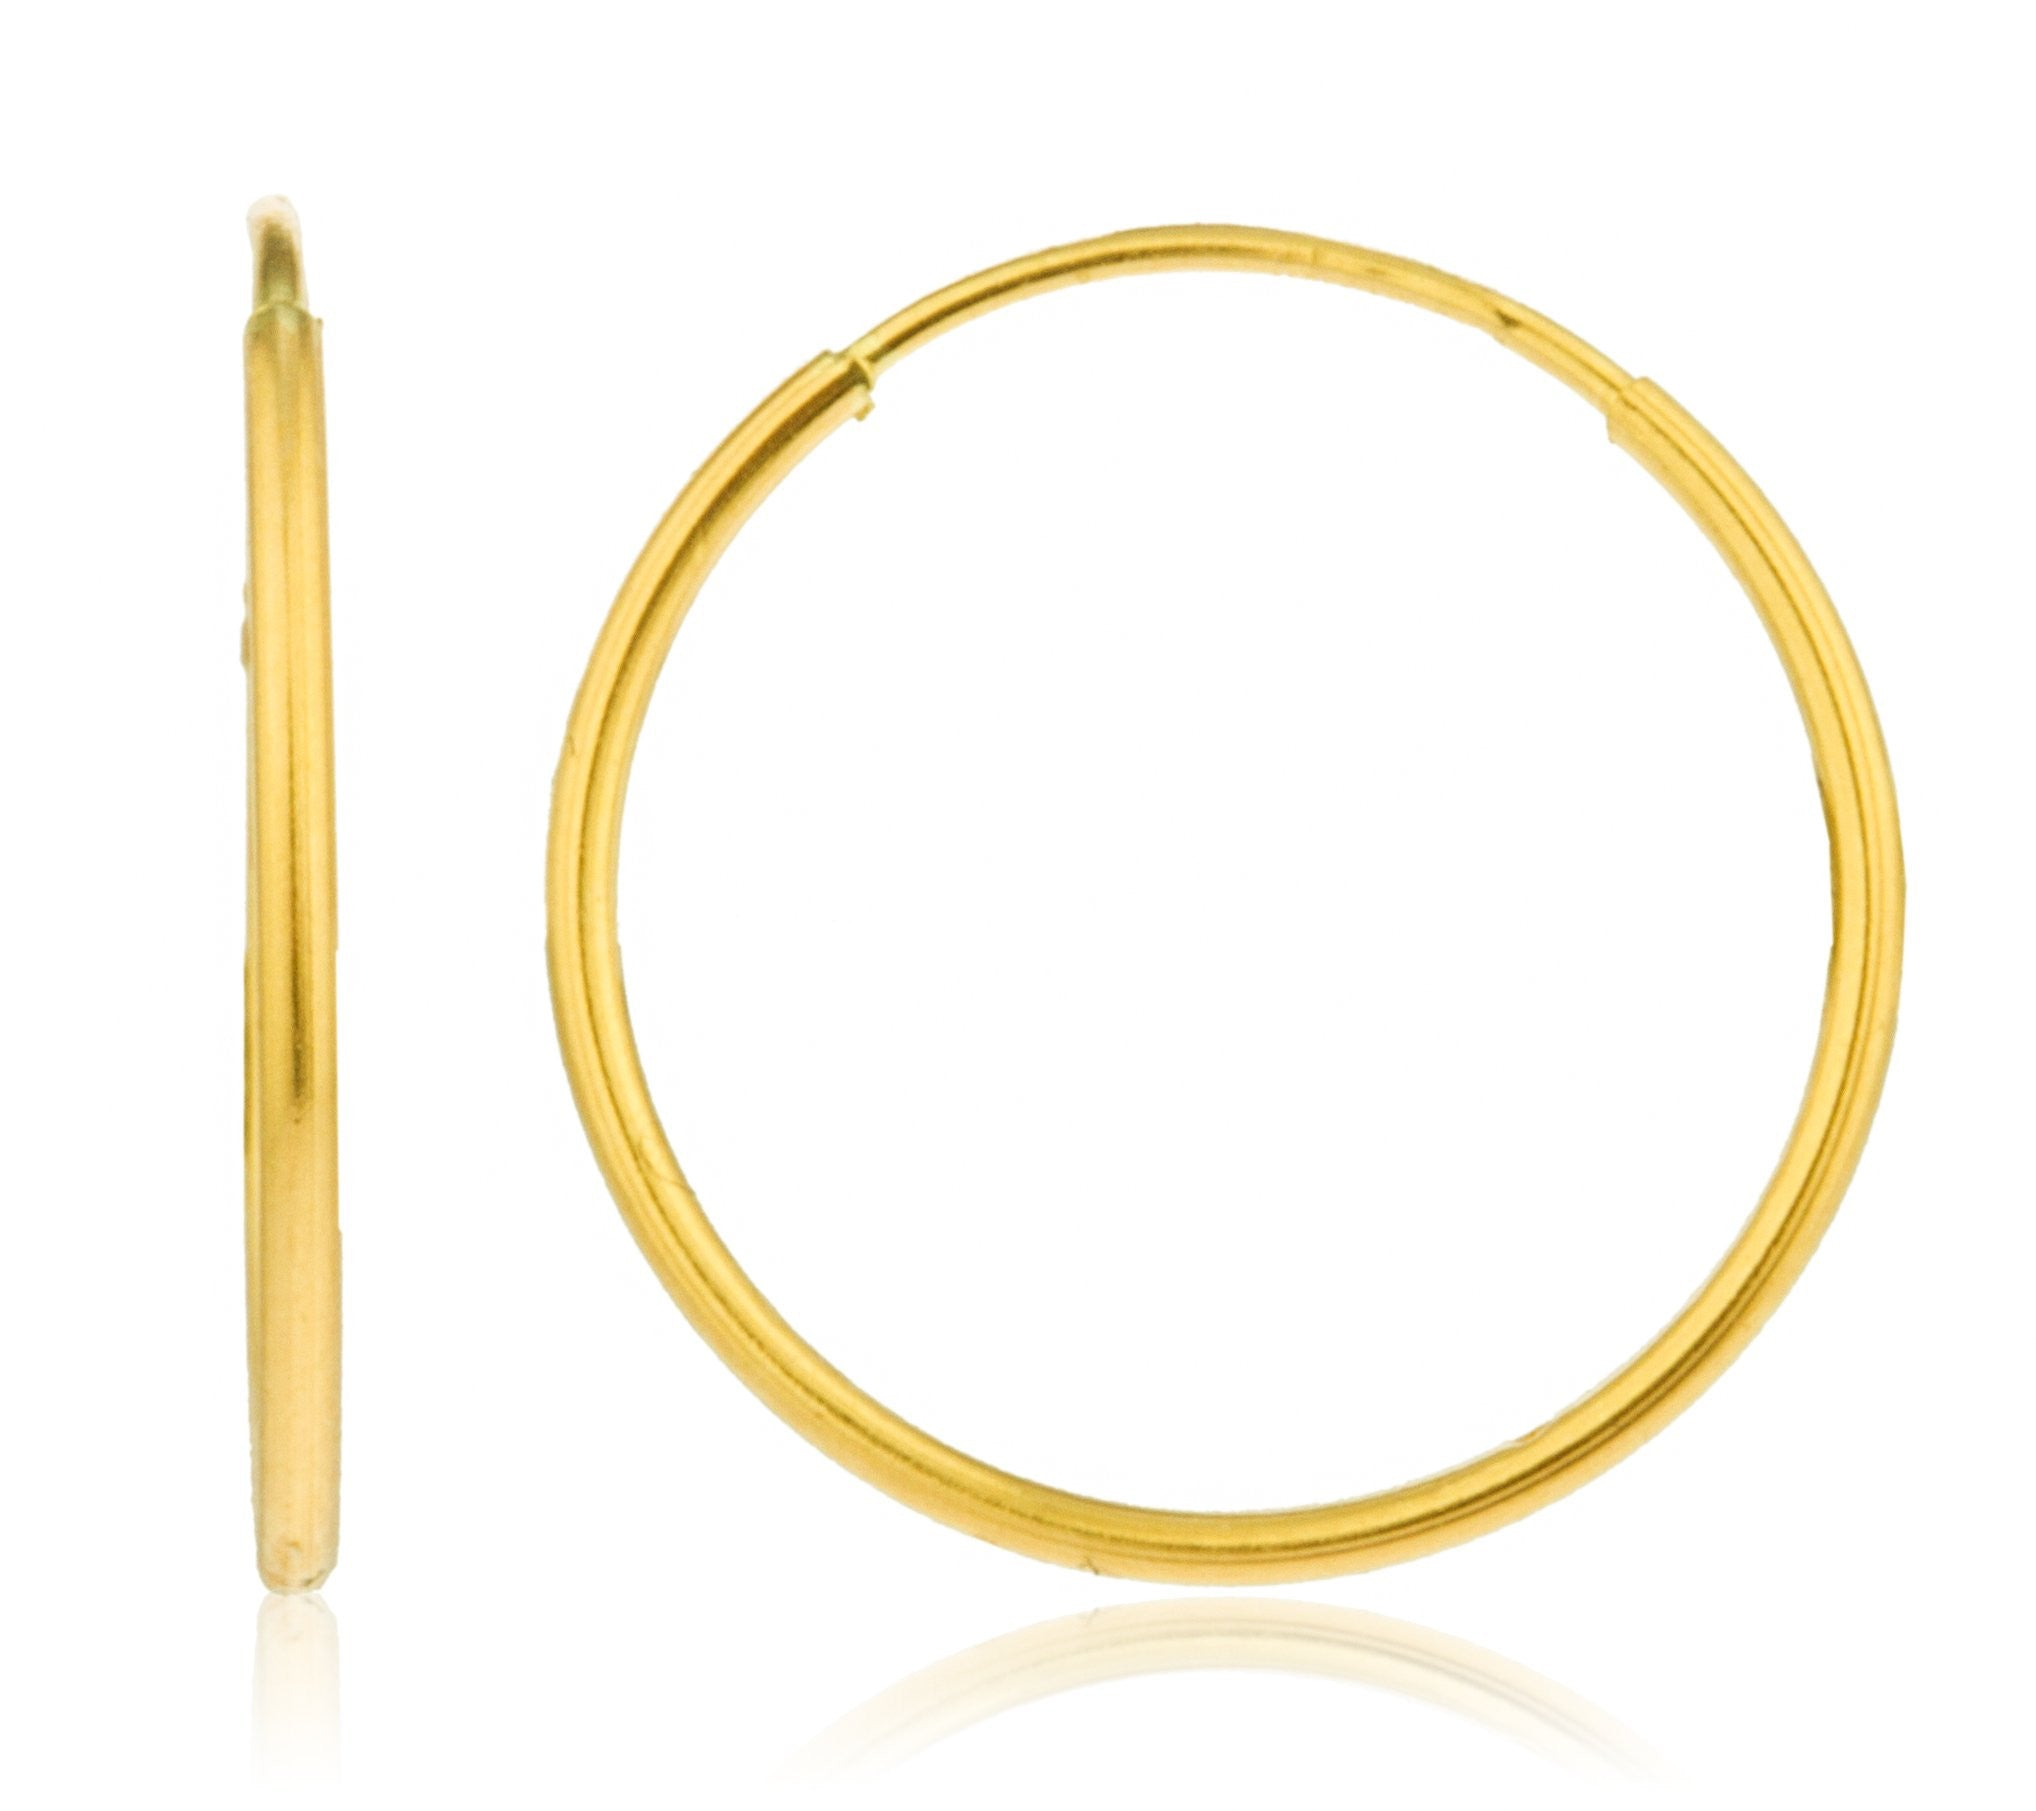 Real 14k Gold 1mm Endless Hoop